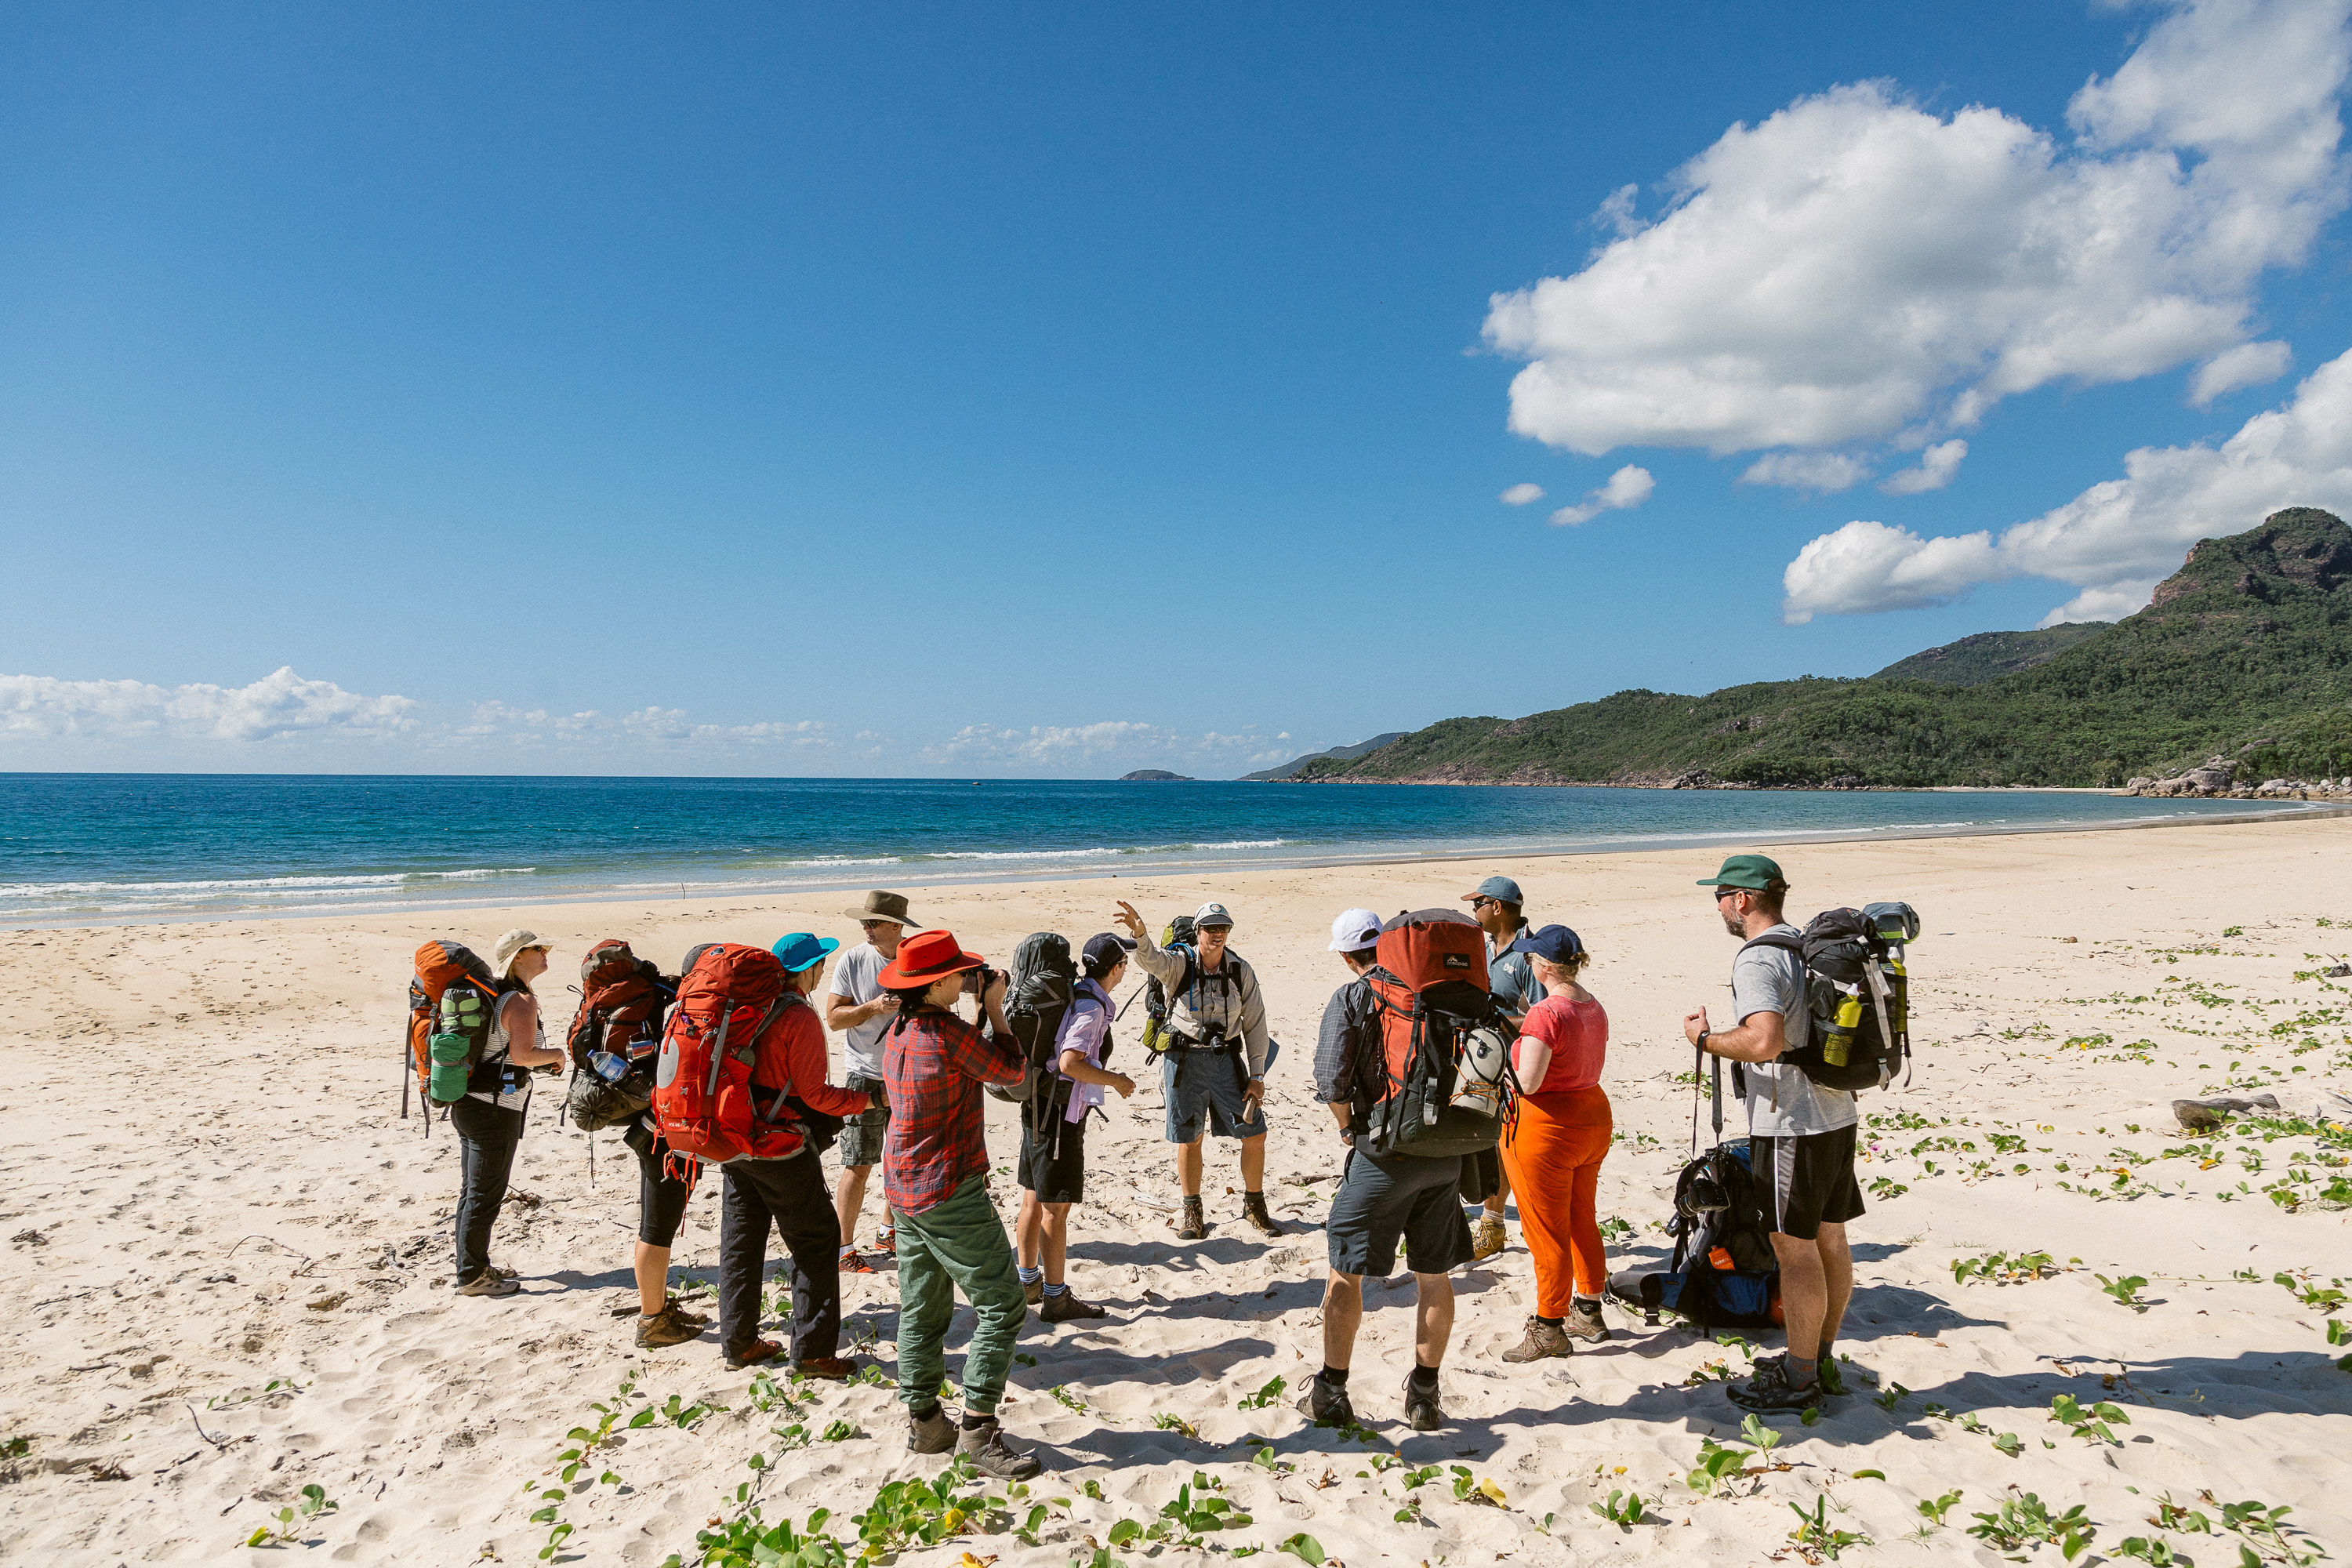 Queensland National Park ranger Emma Schmidt briefs a group of hikers ahead of a 4 day adventure along the Thorsborne Trail, a 40km hiking path that visits several of Hinchinbrook Island's beaches and waterfalls. Situated off the coast of North Queensland, Australia, Hinchinbrook Island is a mountainous National Park characterised by rainforest and golden beaches. Walkers typically take 4 days to complete the hike, and to protect the ecosystem of the island only 40 visitors are allowed onto the trail at any one time.